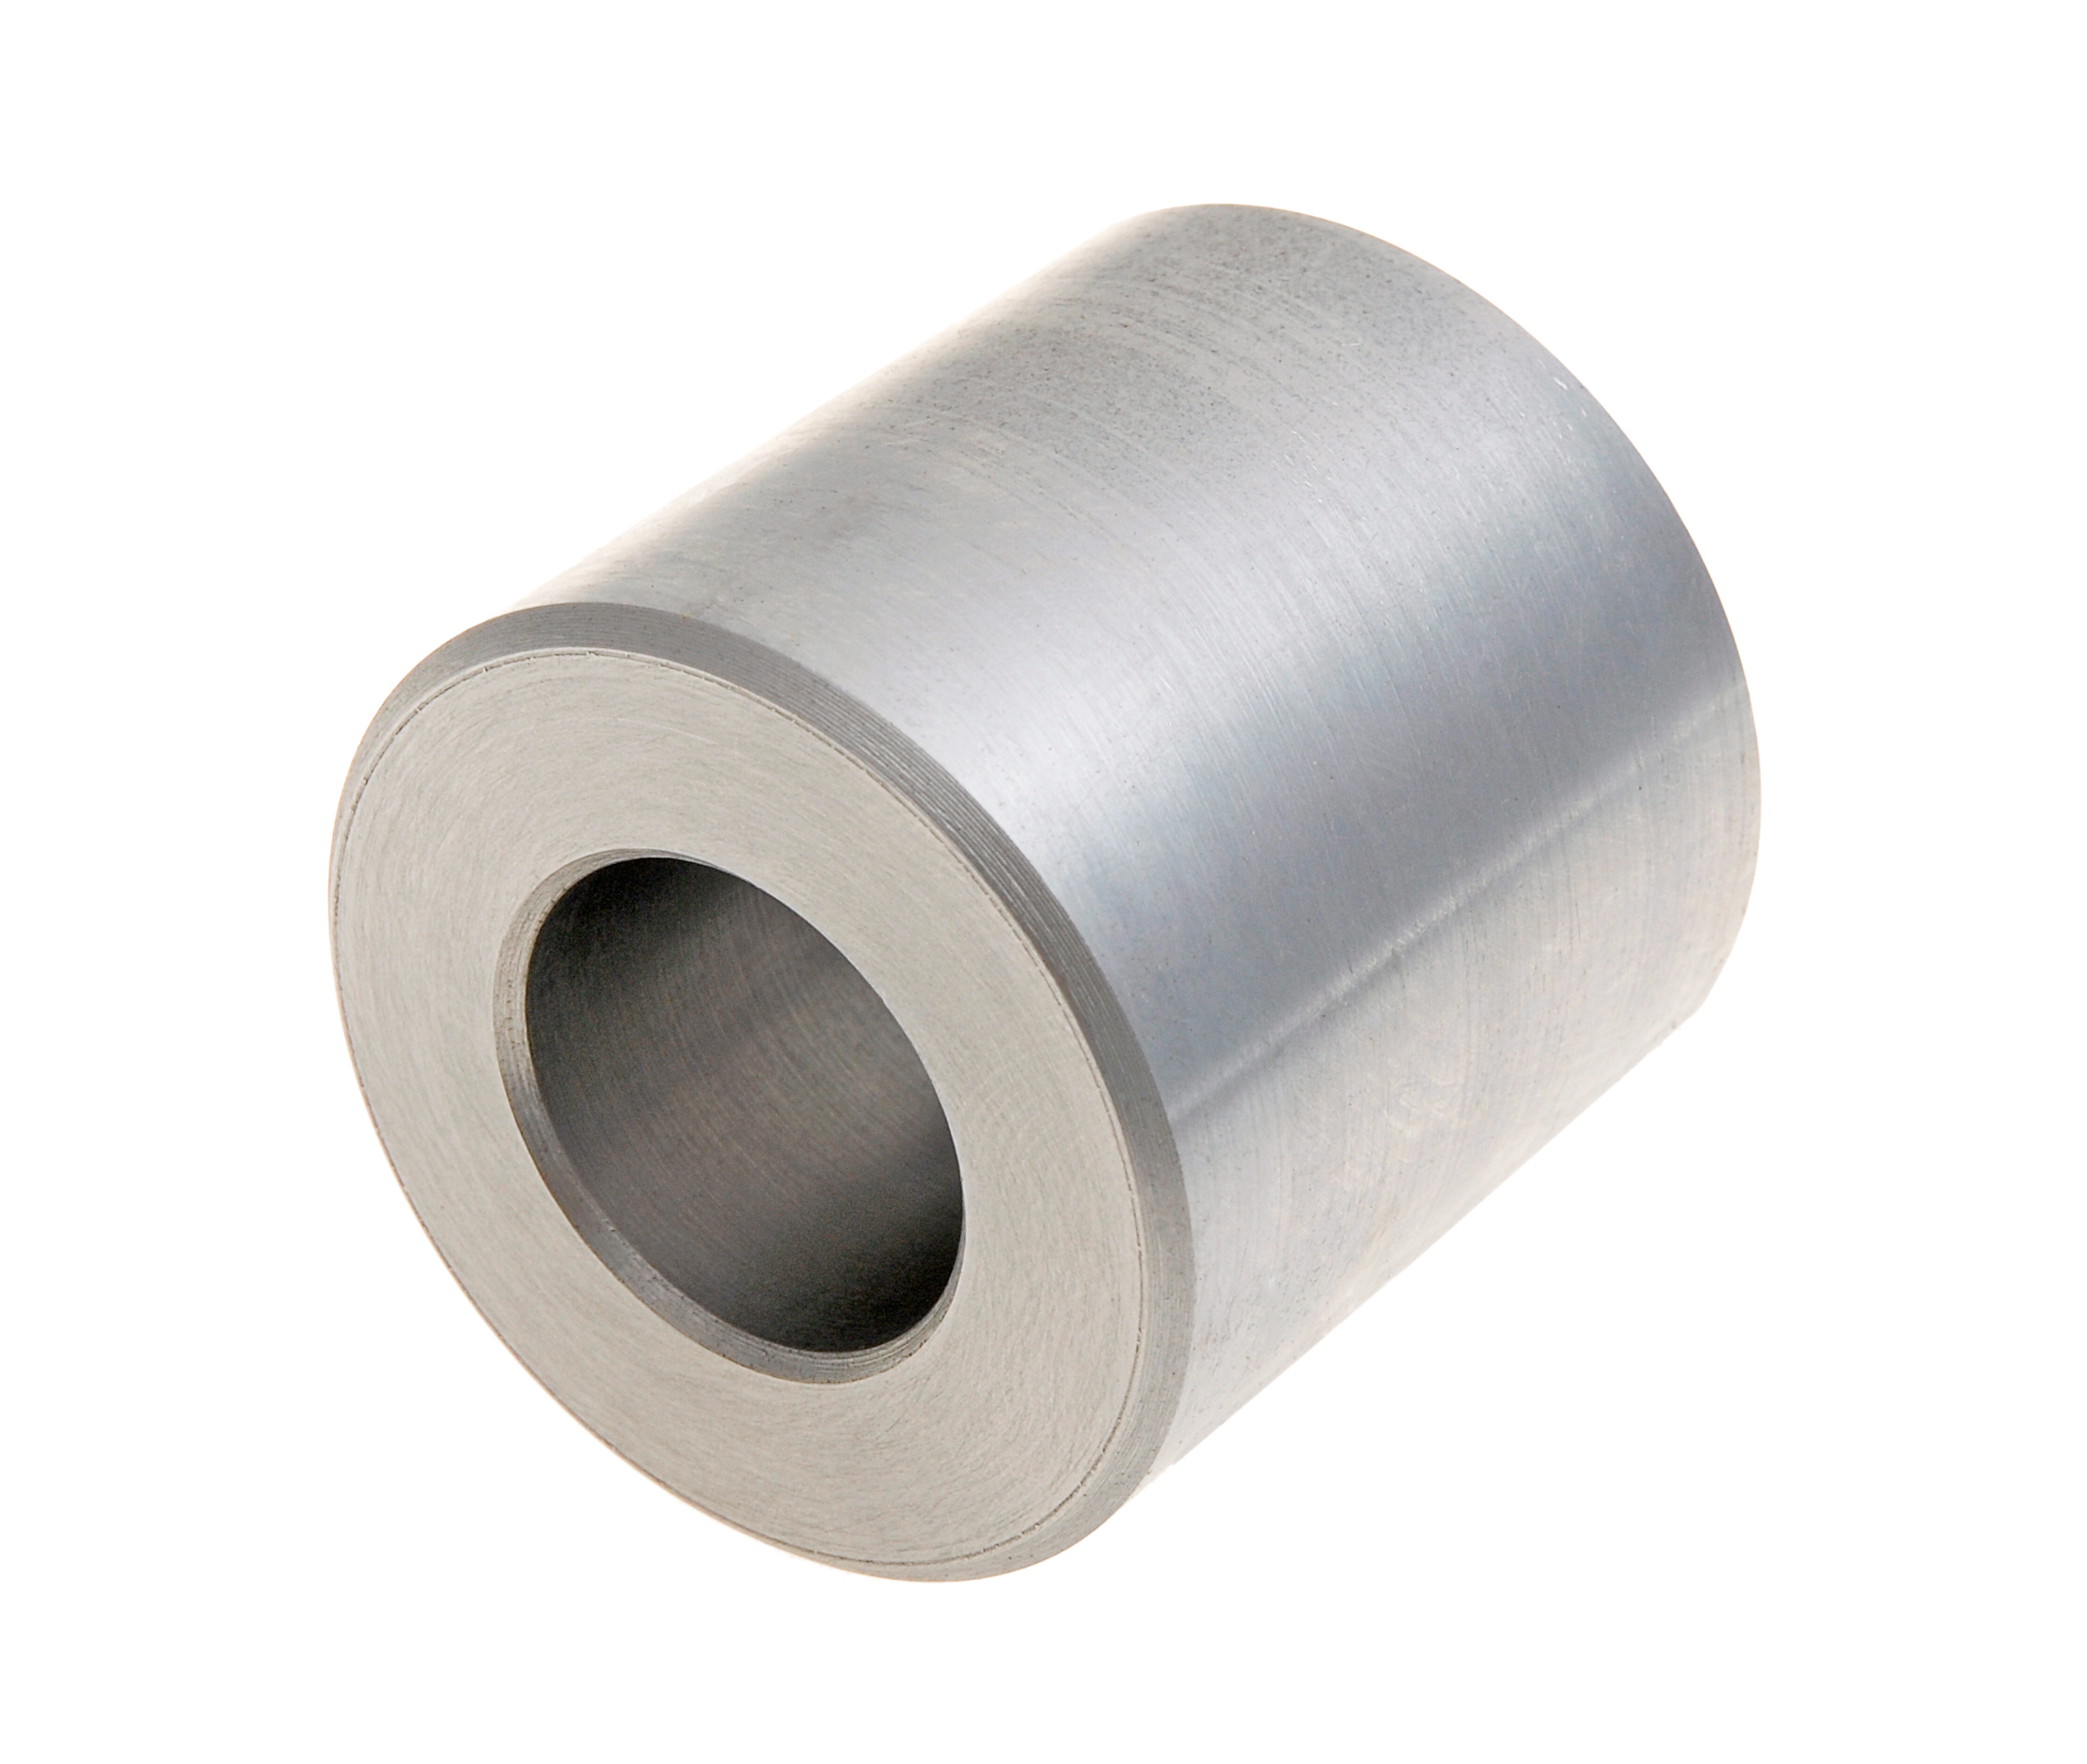 Bushing - Weldable